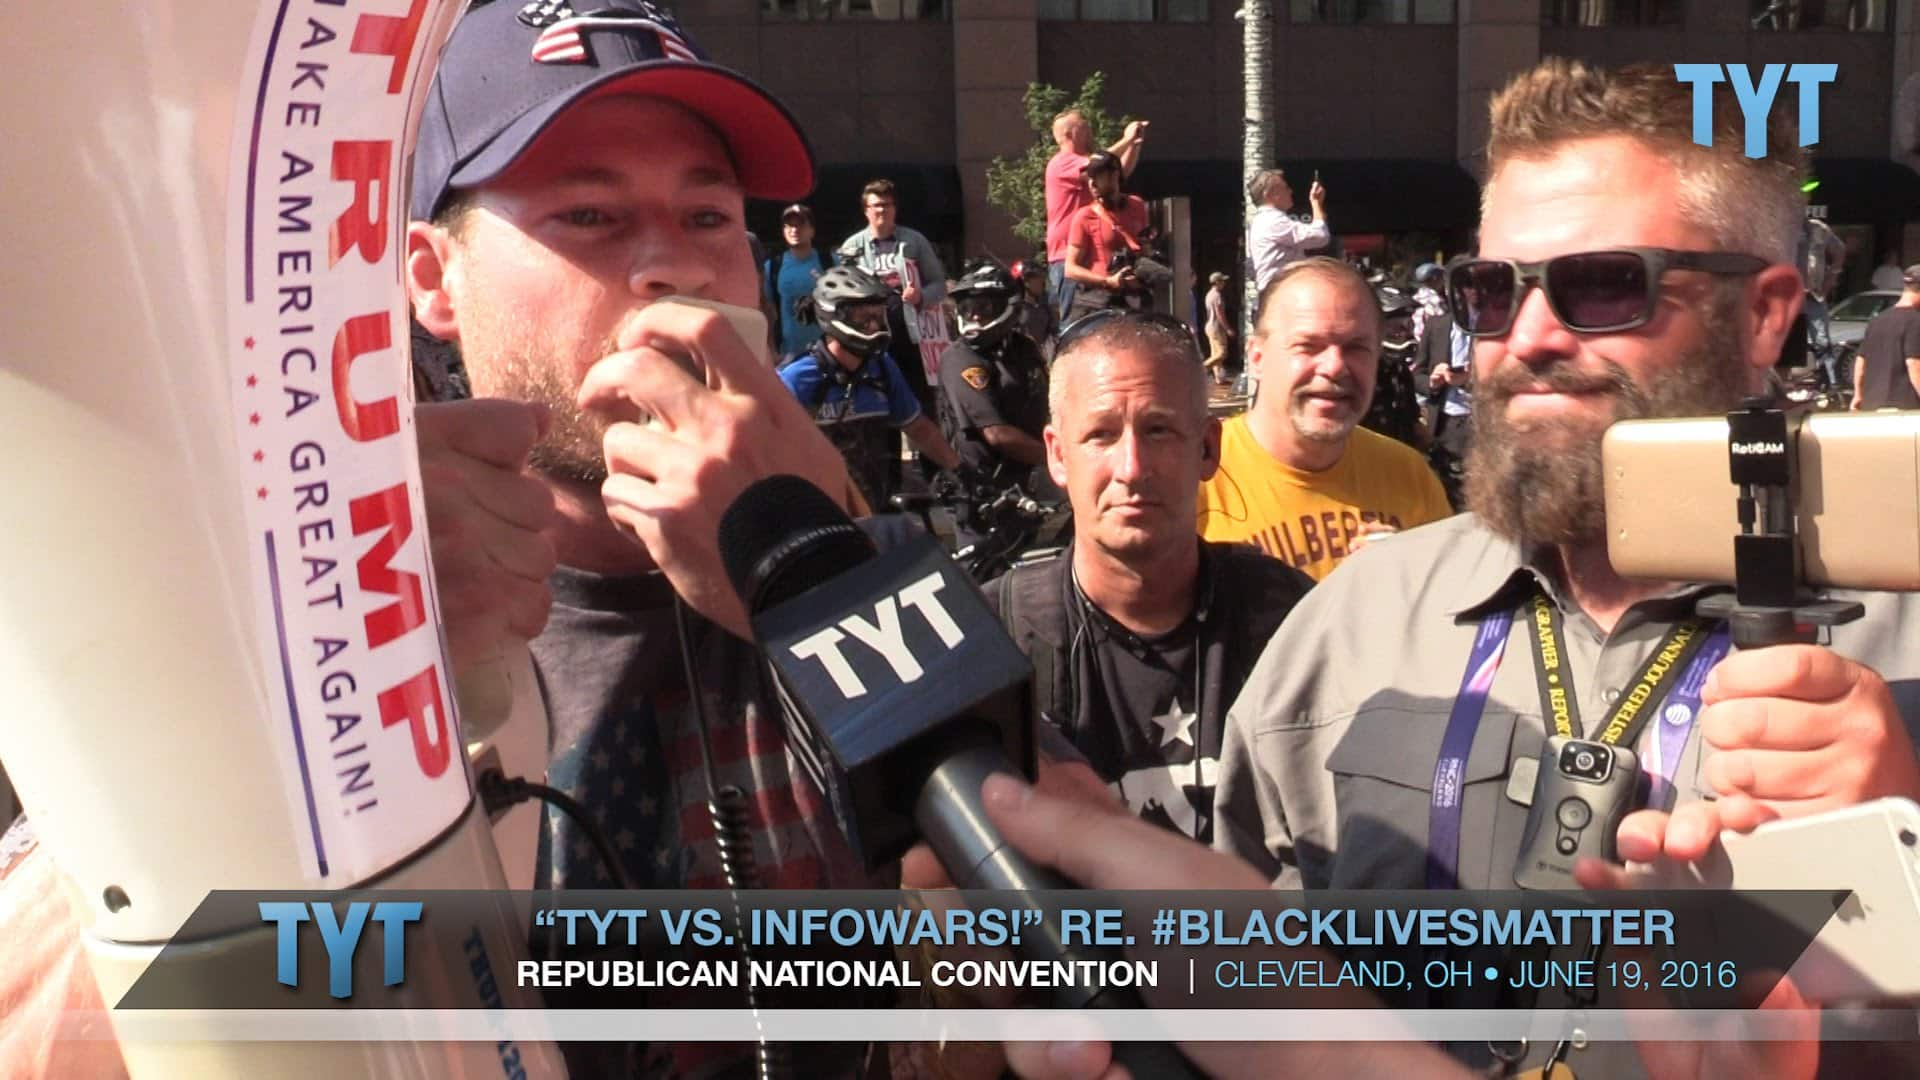 TYT vs. InfoWars re. #BlackLivesMatter At RNC Convention 39